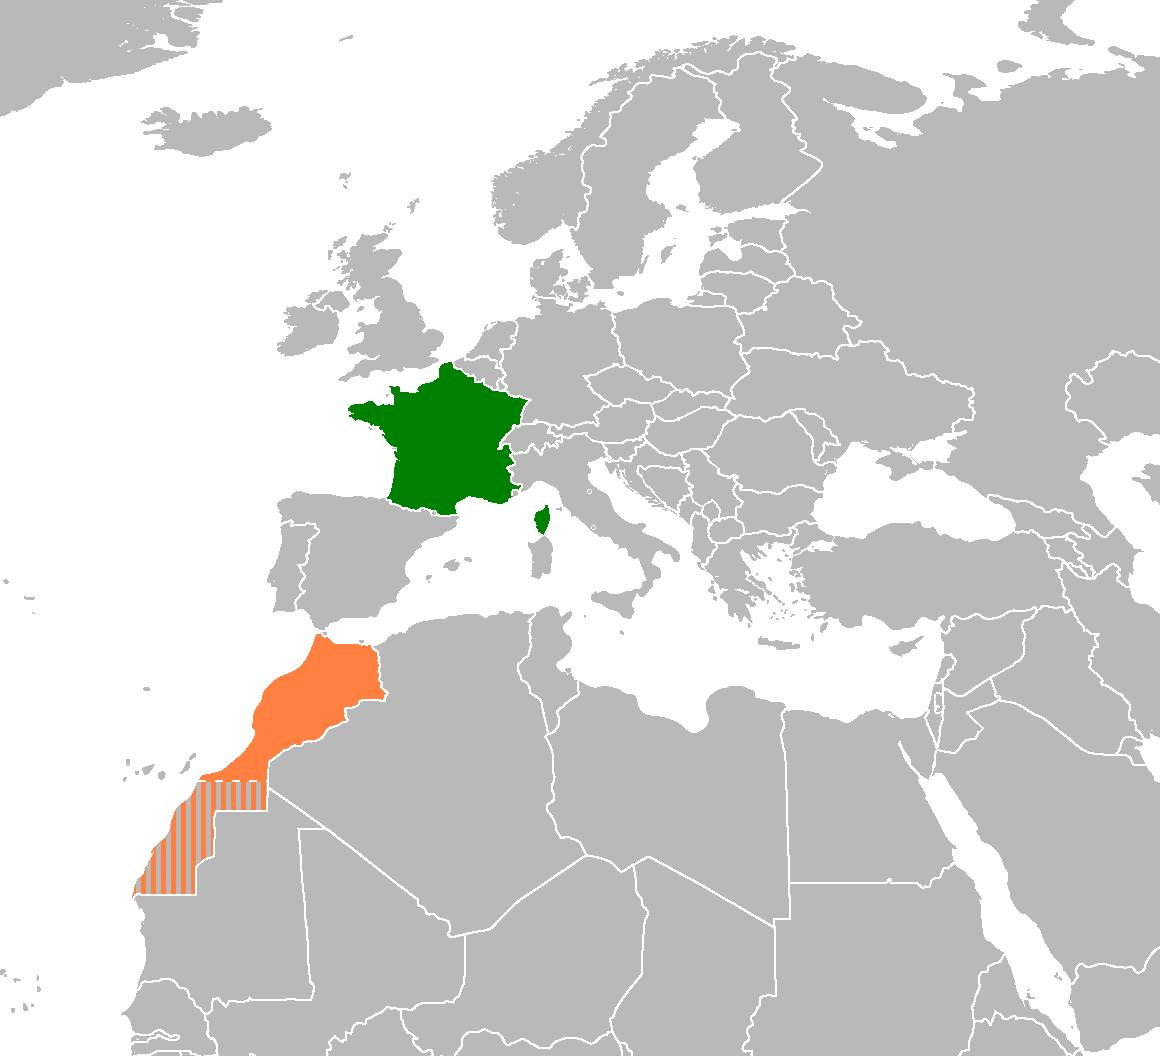 France Morocco Relations